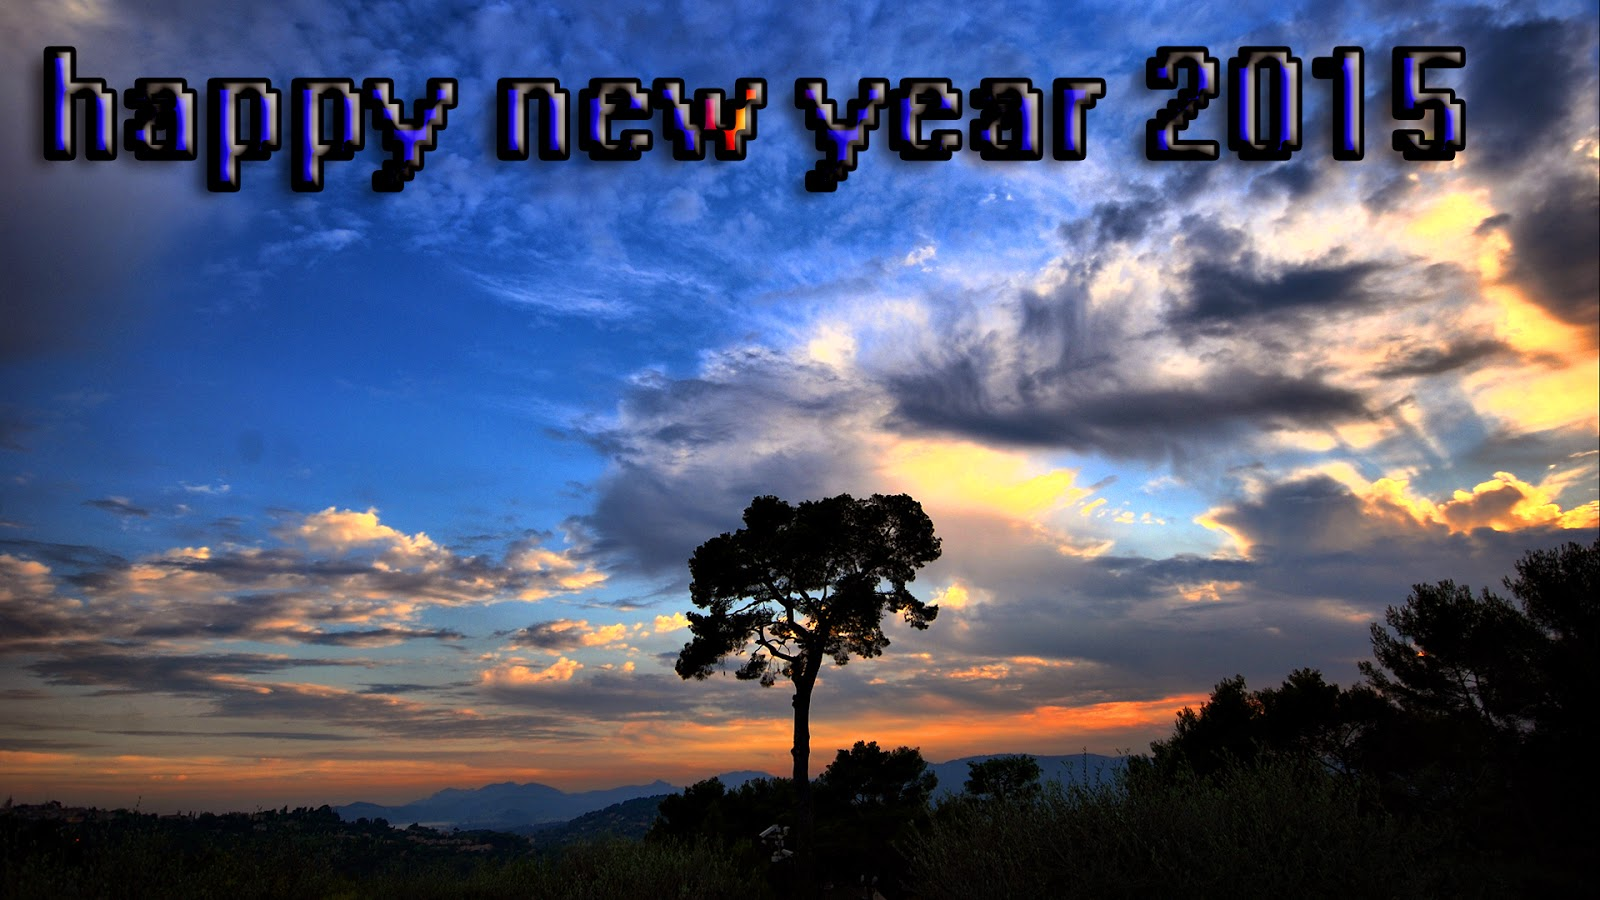 Latest Beautiful Happy New Year 2015 Images– Download Wallpapers